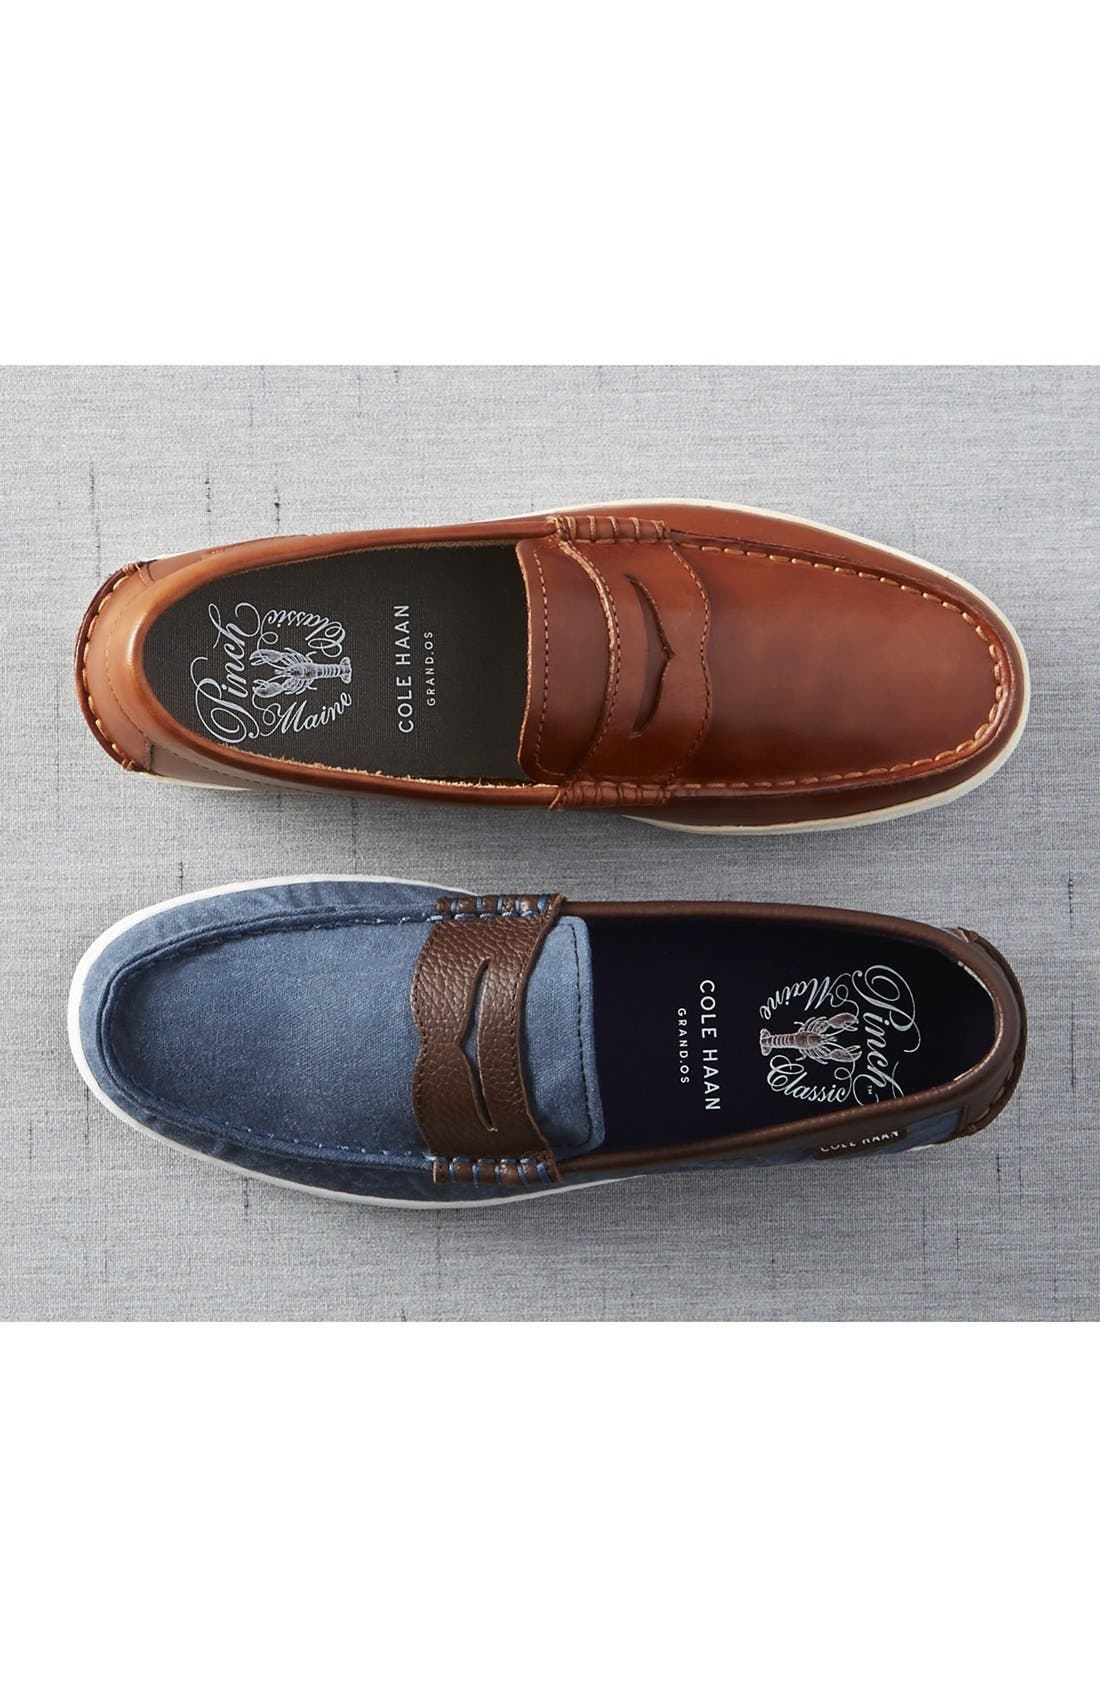 'Pinch' Penny Loafer,                             Alternate thumbnail 5, color,                             305